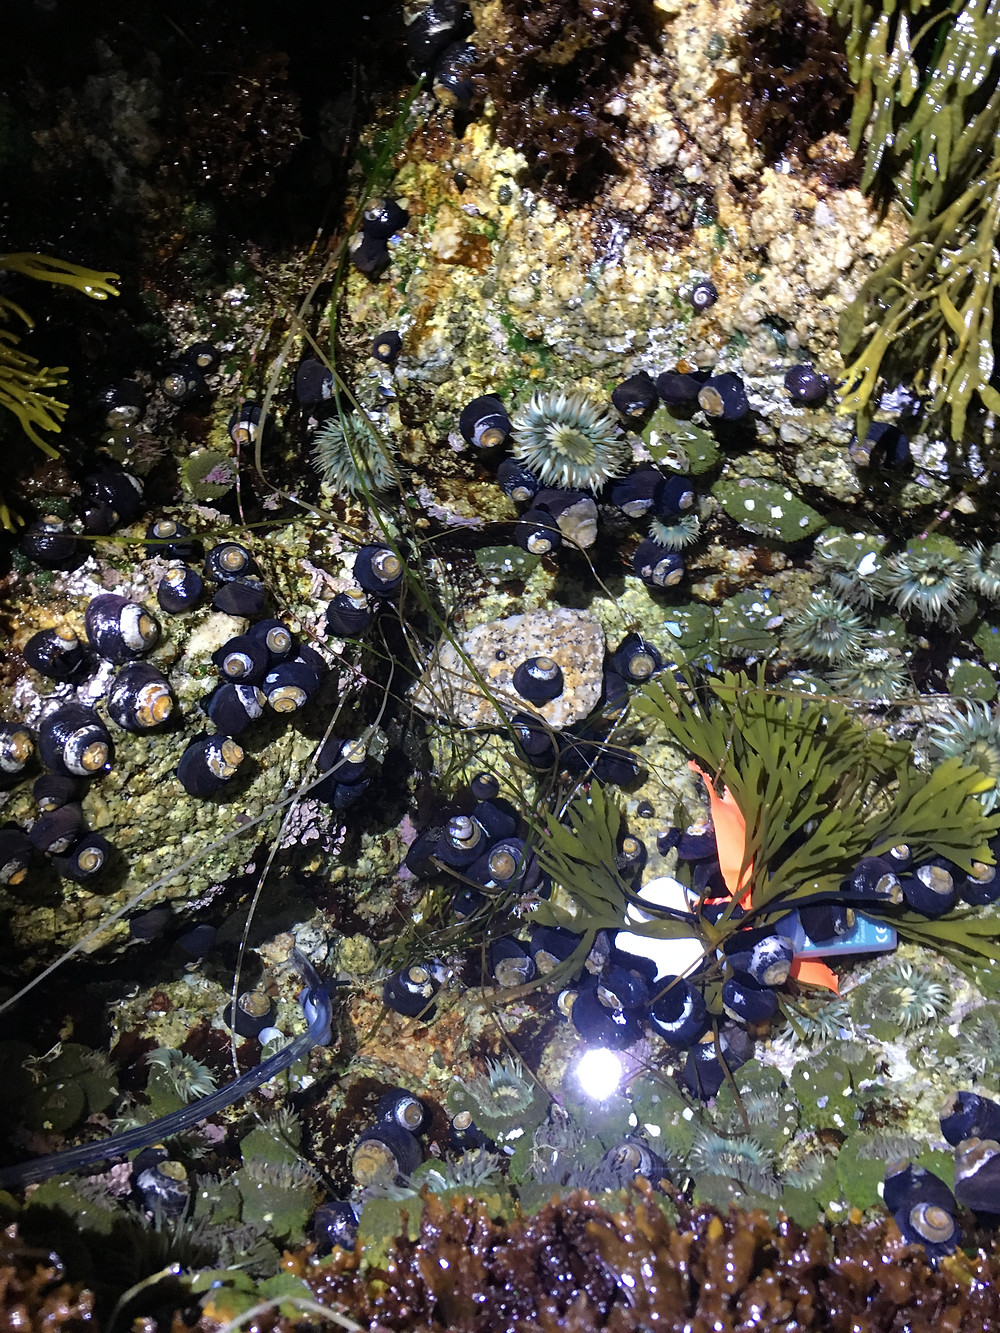 Tidepool at night FILLED with herbivorous snails (Chlorostoma) and sea anemones (Anthropluera)